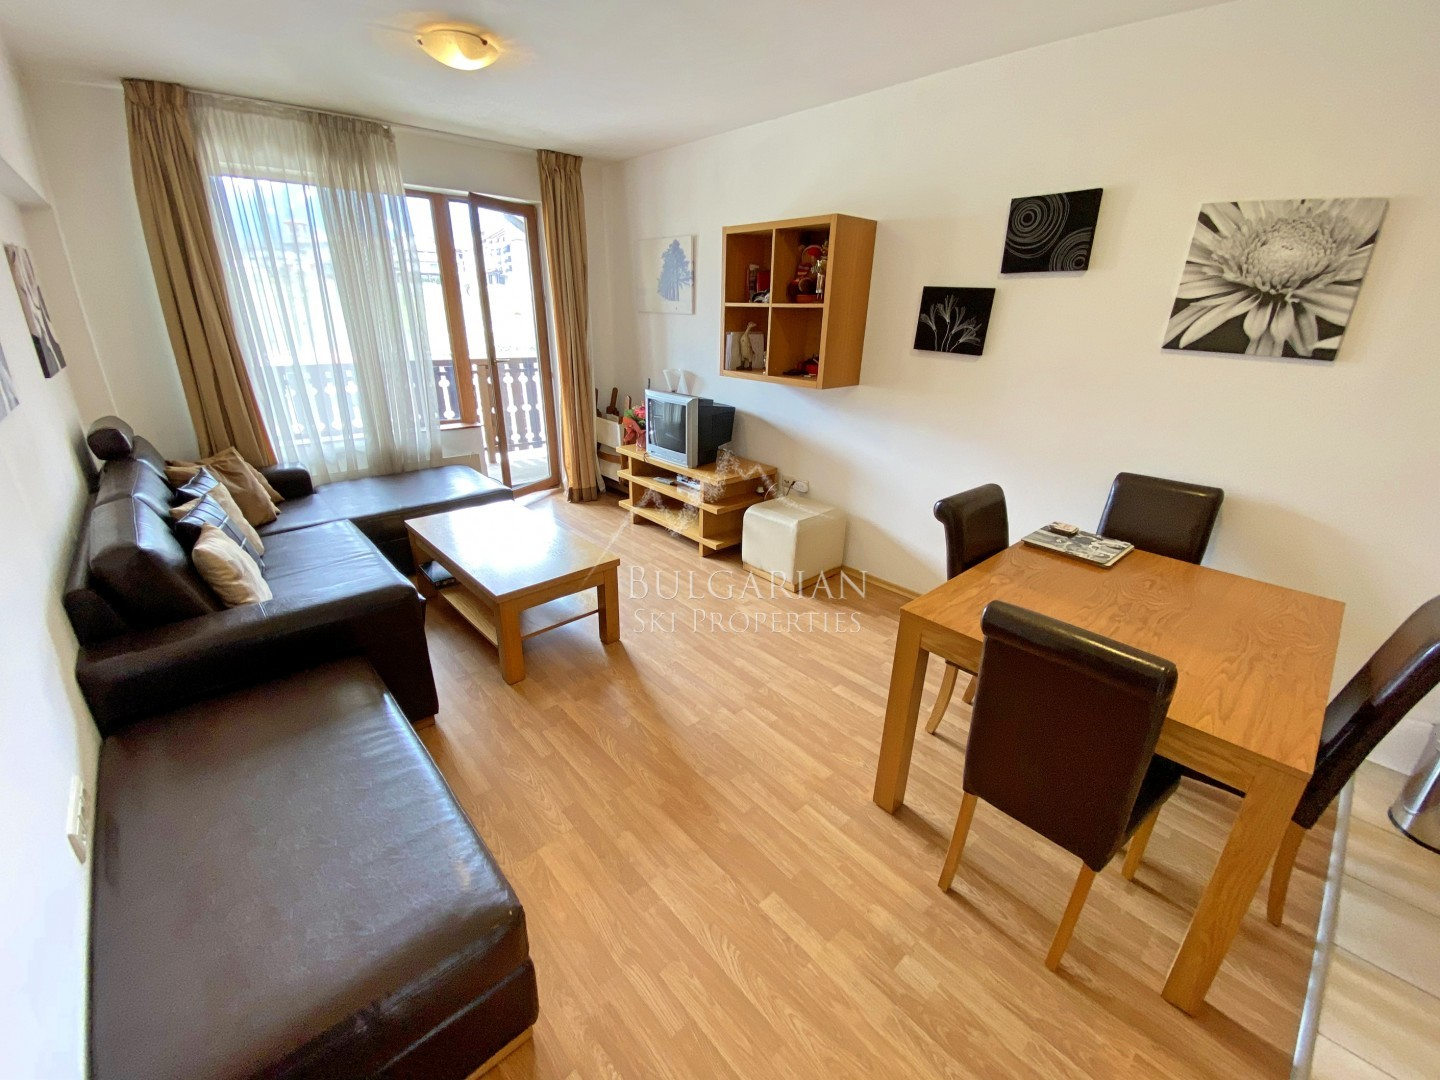 Top Lodge, Bansko: spacious one-bedroom apartment for sale next to the ski lift